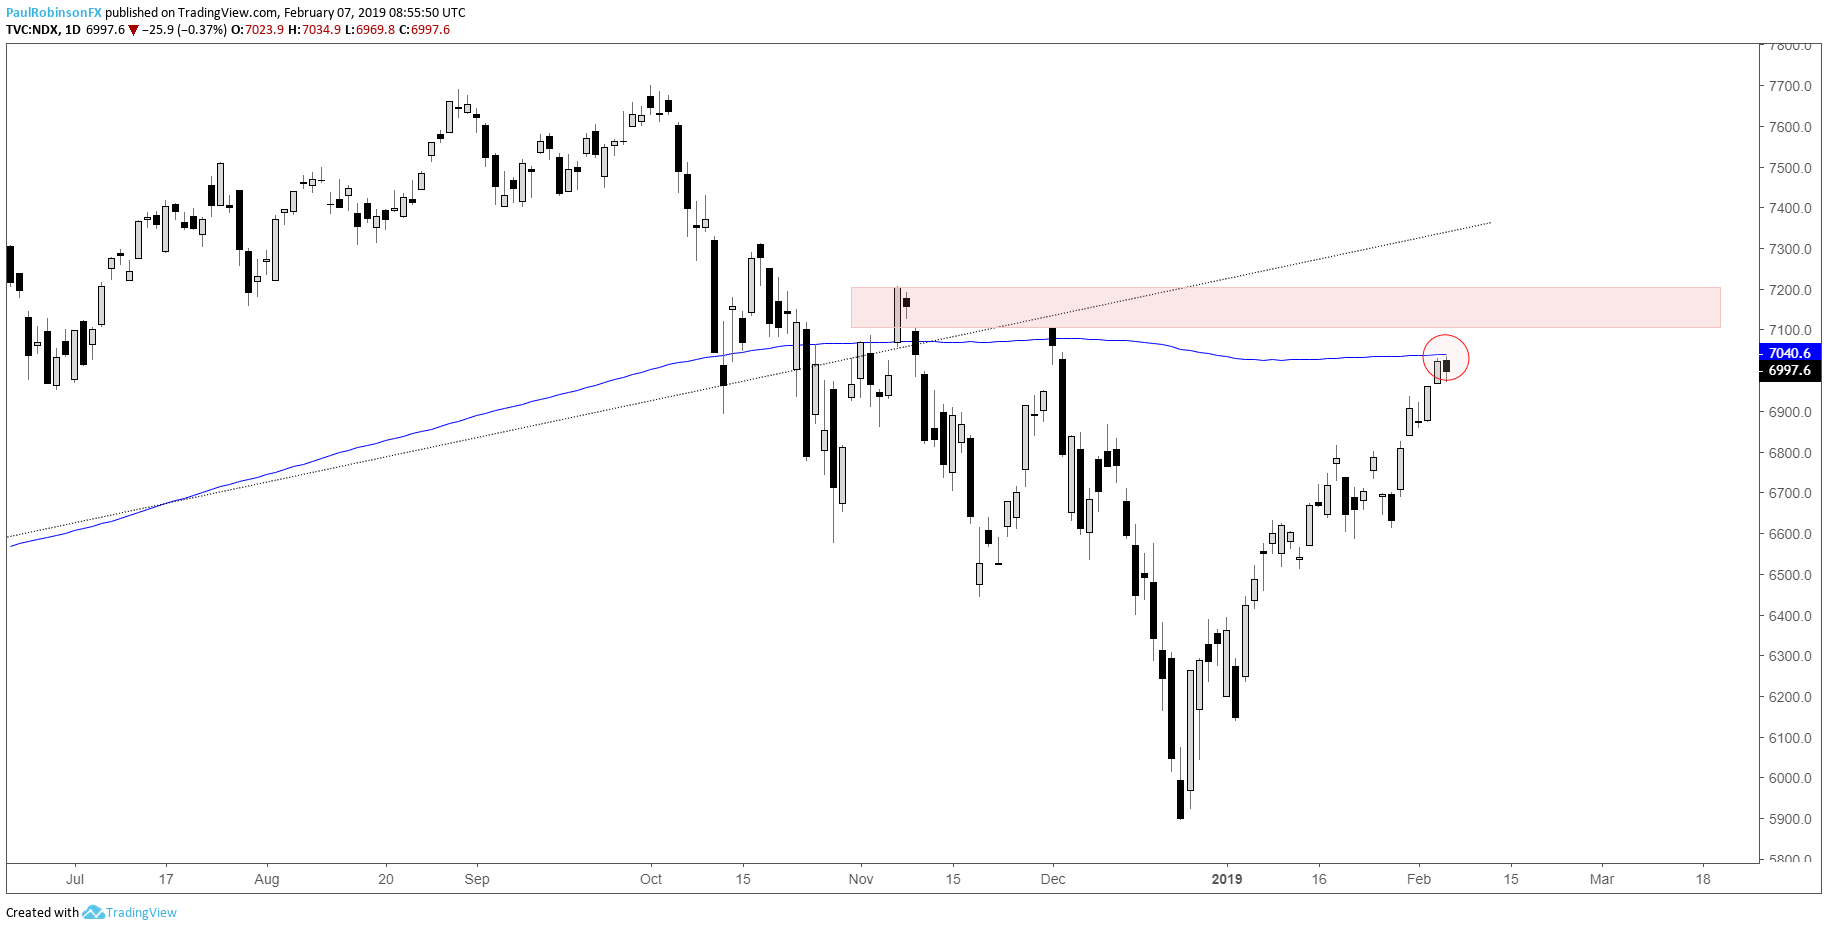 Technical Outlook for S&P 500, Dow Jones, and Nasdaq 100